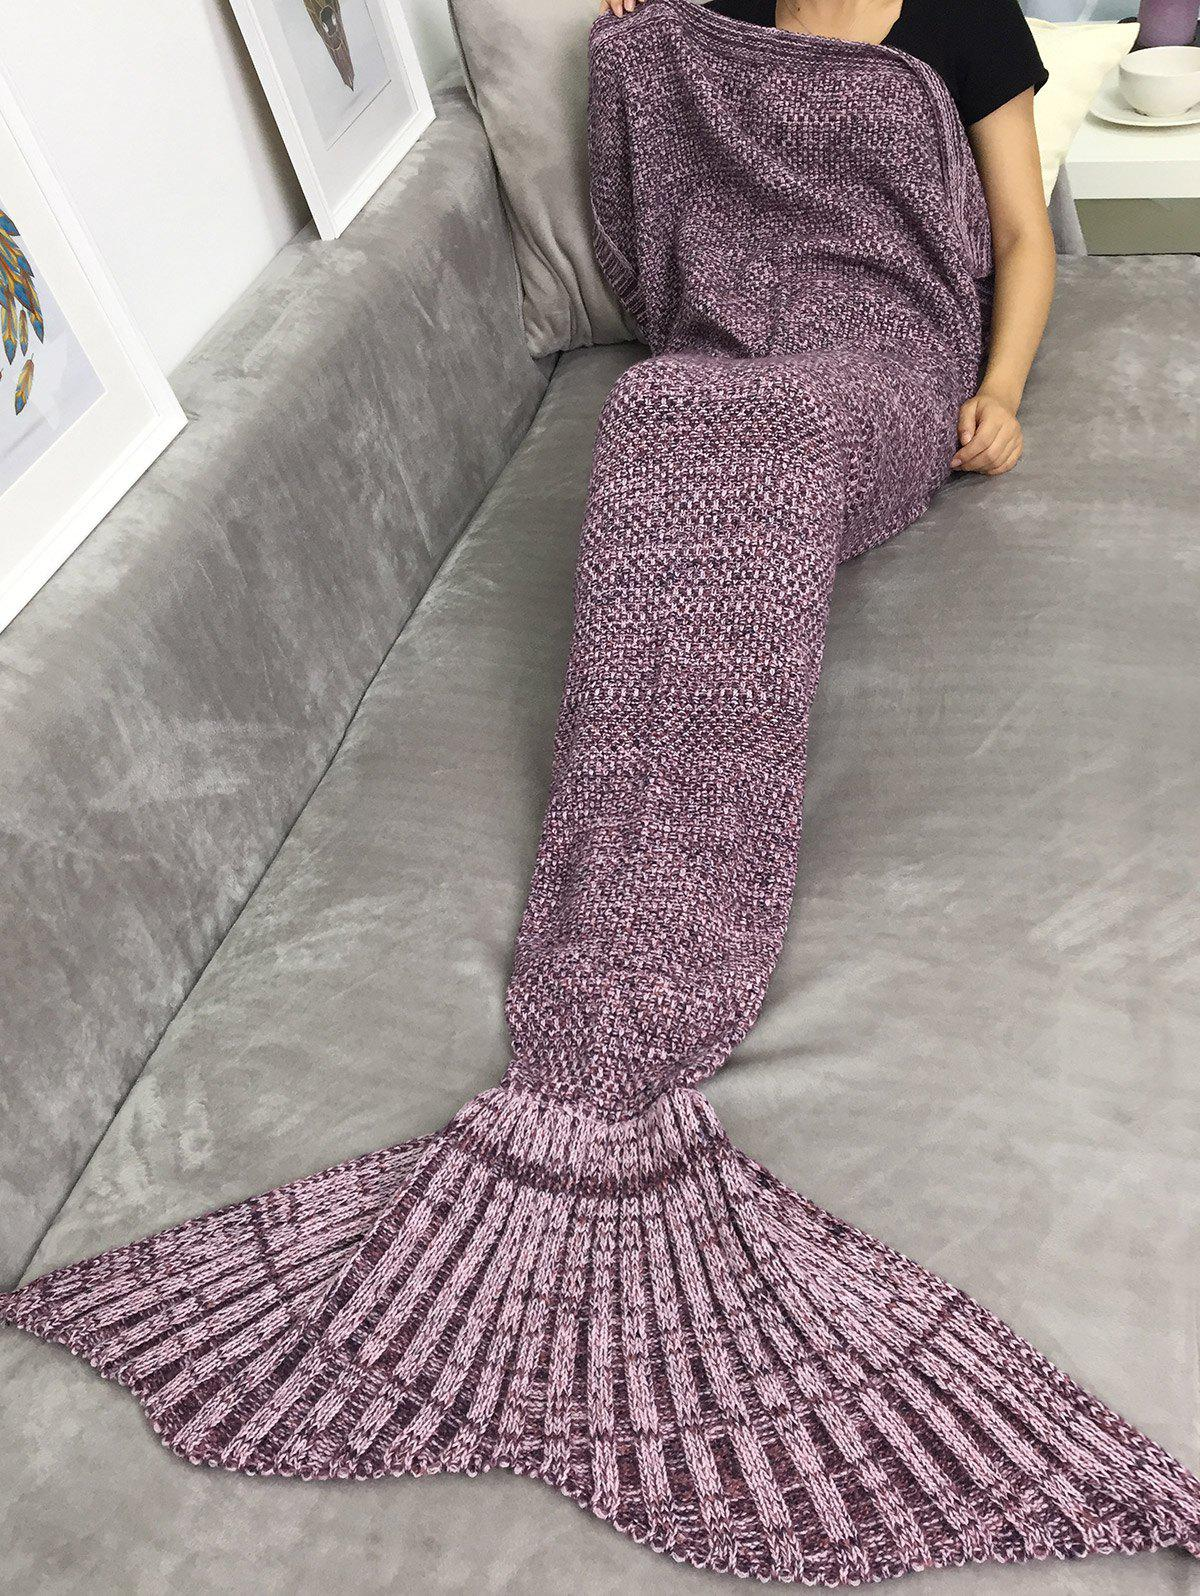 Handmade Knitting Sleeping Bag Sofa Wrap Mermaid Tail Blanket 40 90 high quality thicken fashion handmade knitted mermaid tail blanket keep warm crochet children throw bed wrap sleeping bag